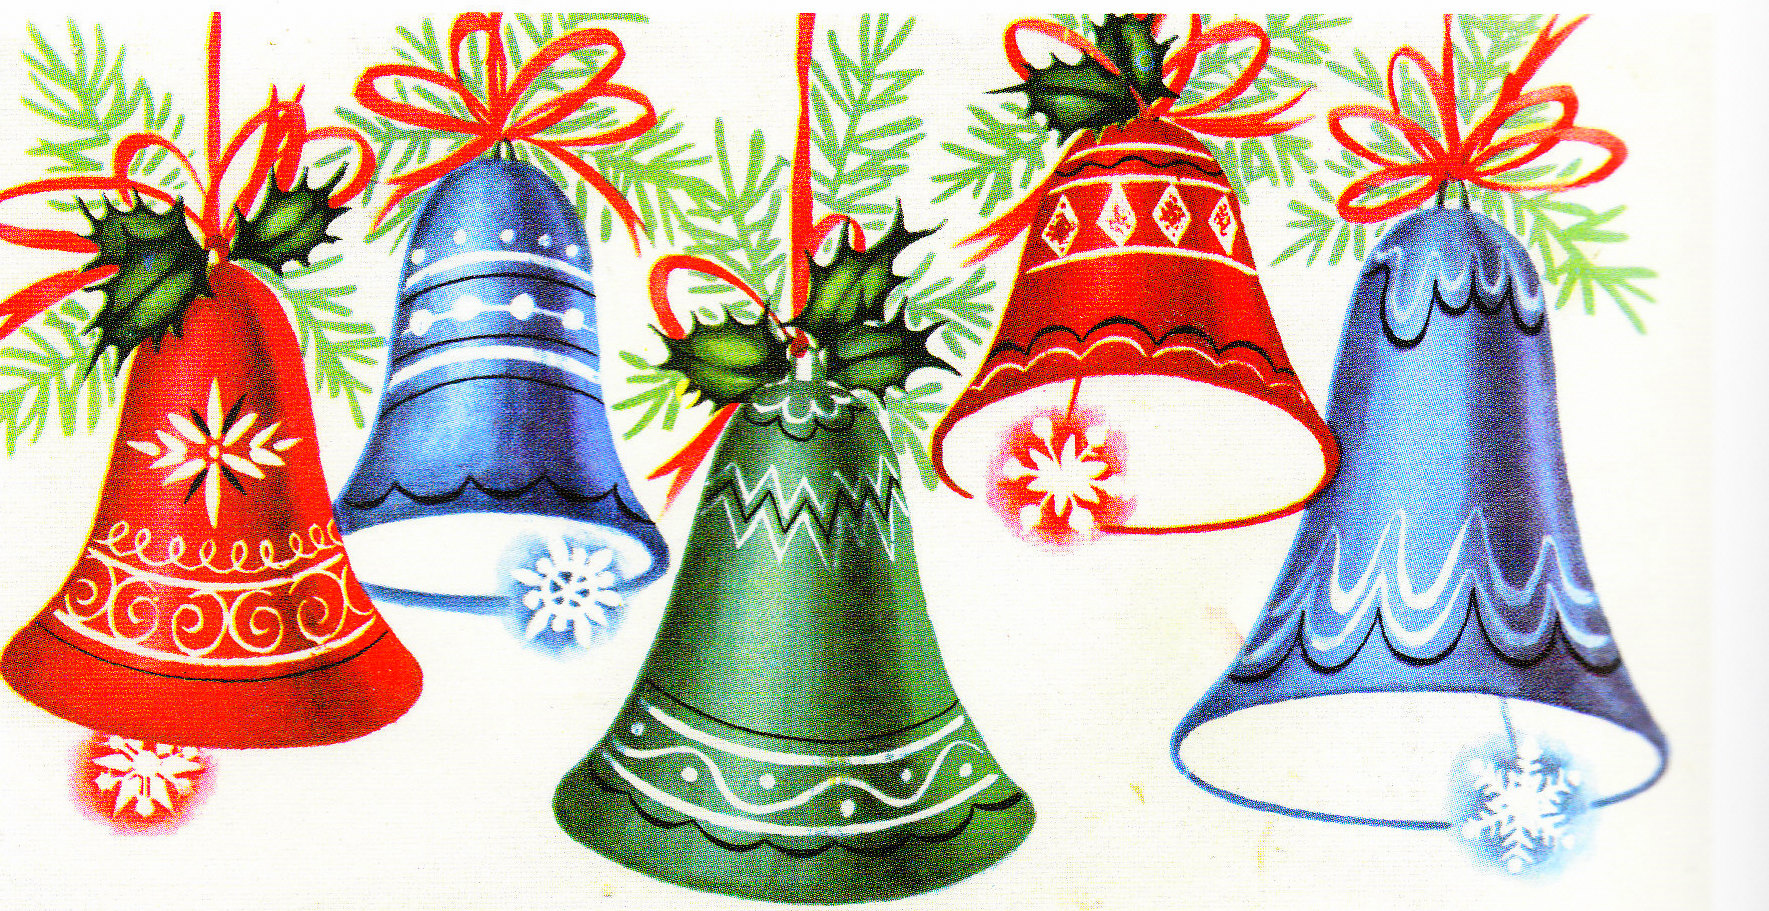 Vintage Christmas Cards of 20th Century